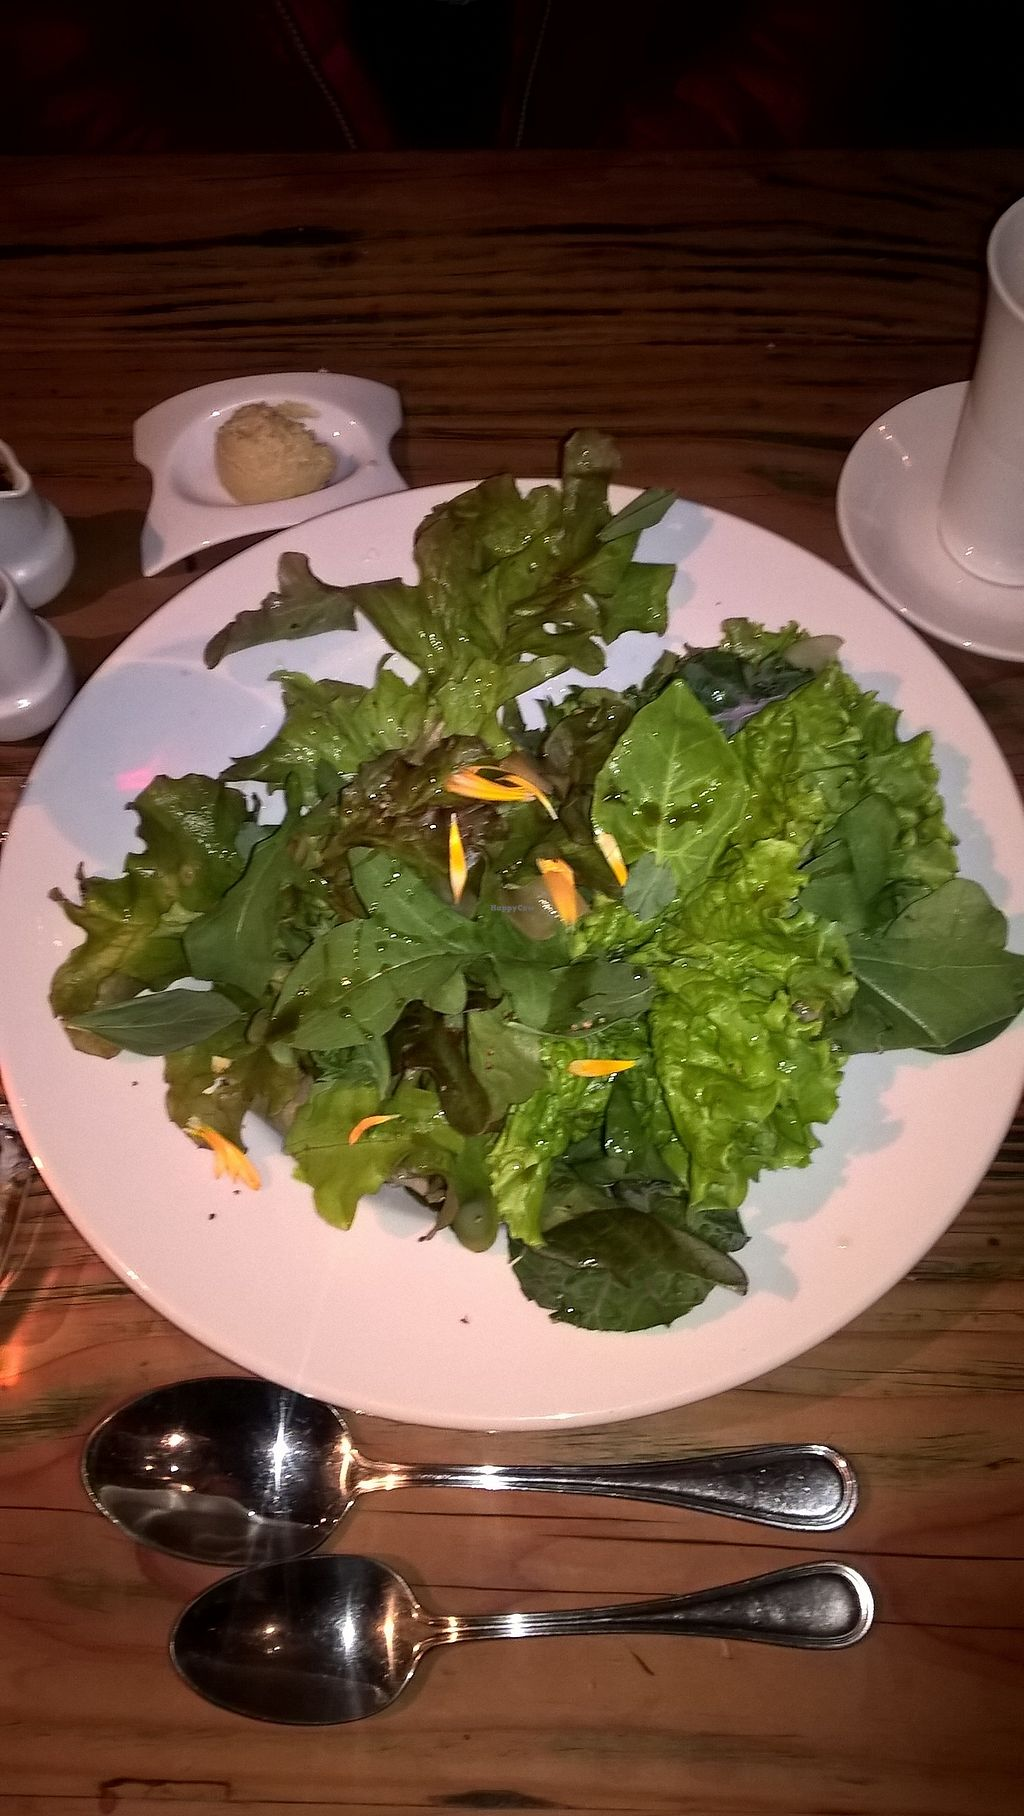 "Photo of Martin Pescador  by <a href=""/members/profile/arya00"">arya00</a> <br/>Salad with lots of different types of leaves <br/> December 23, 2017  - <a href='/contact/abuse/image/107840/338522'>Report</a>"